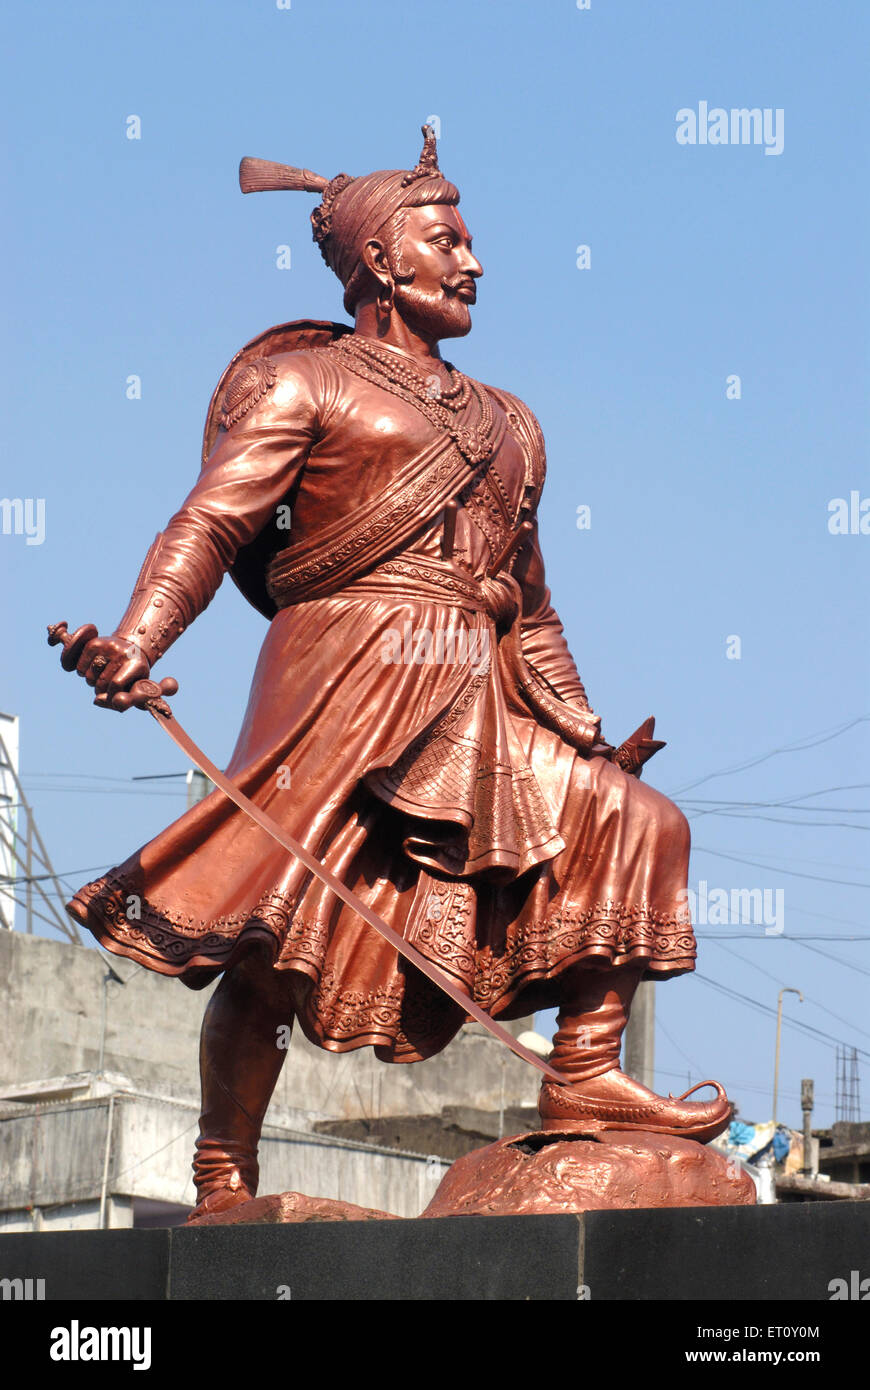 bronze statue of sambhaji maharaj holding sword son of maratha king stock photo royalty free